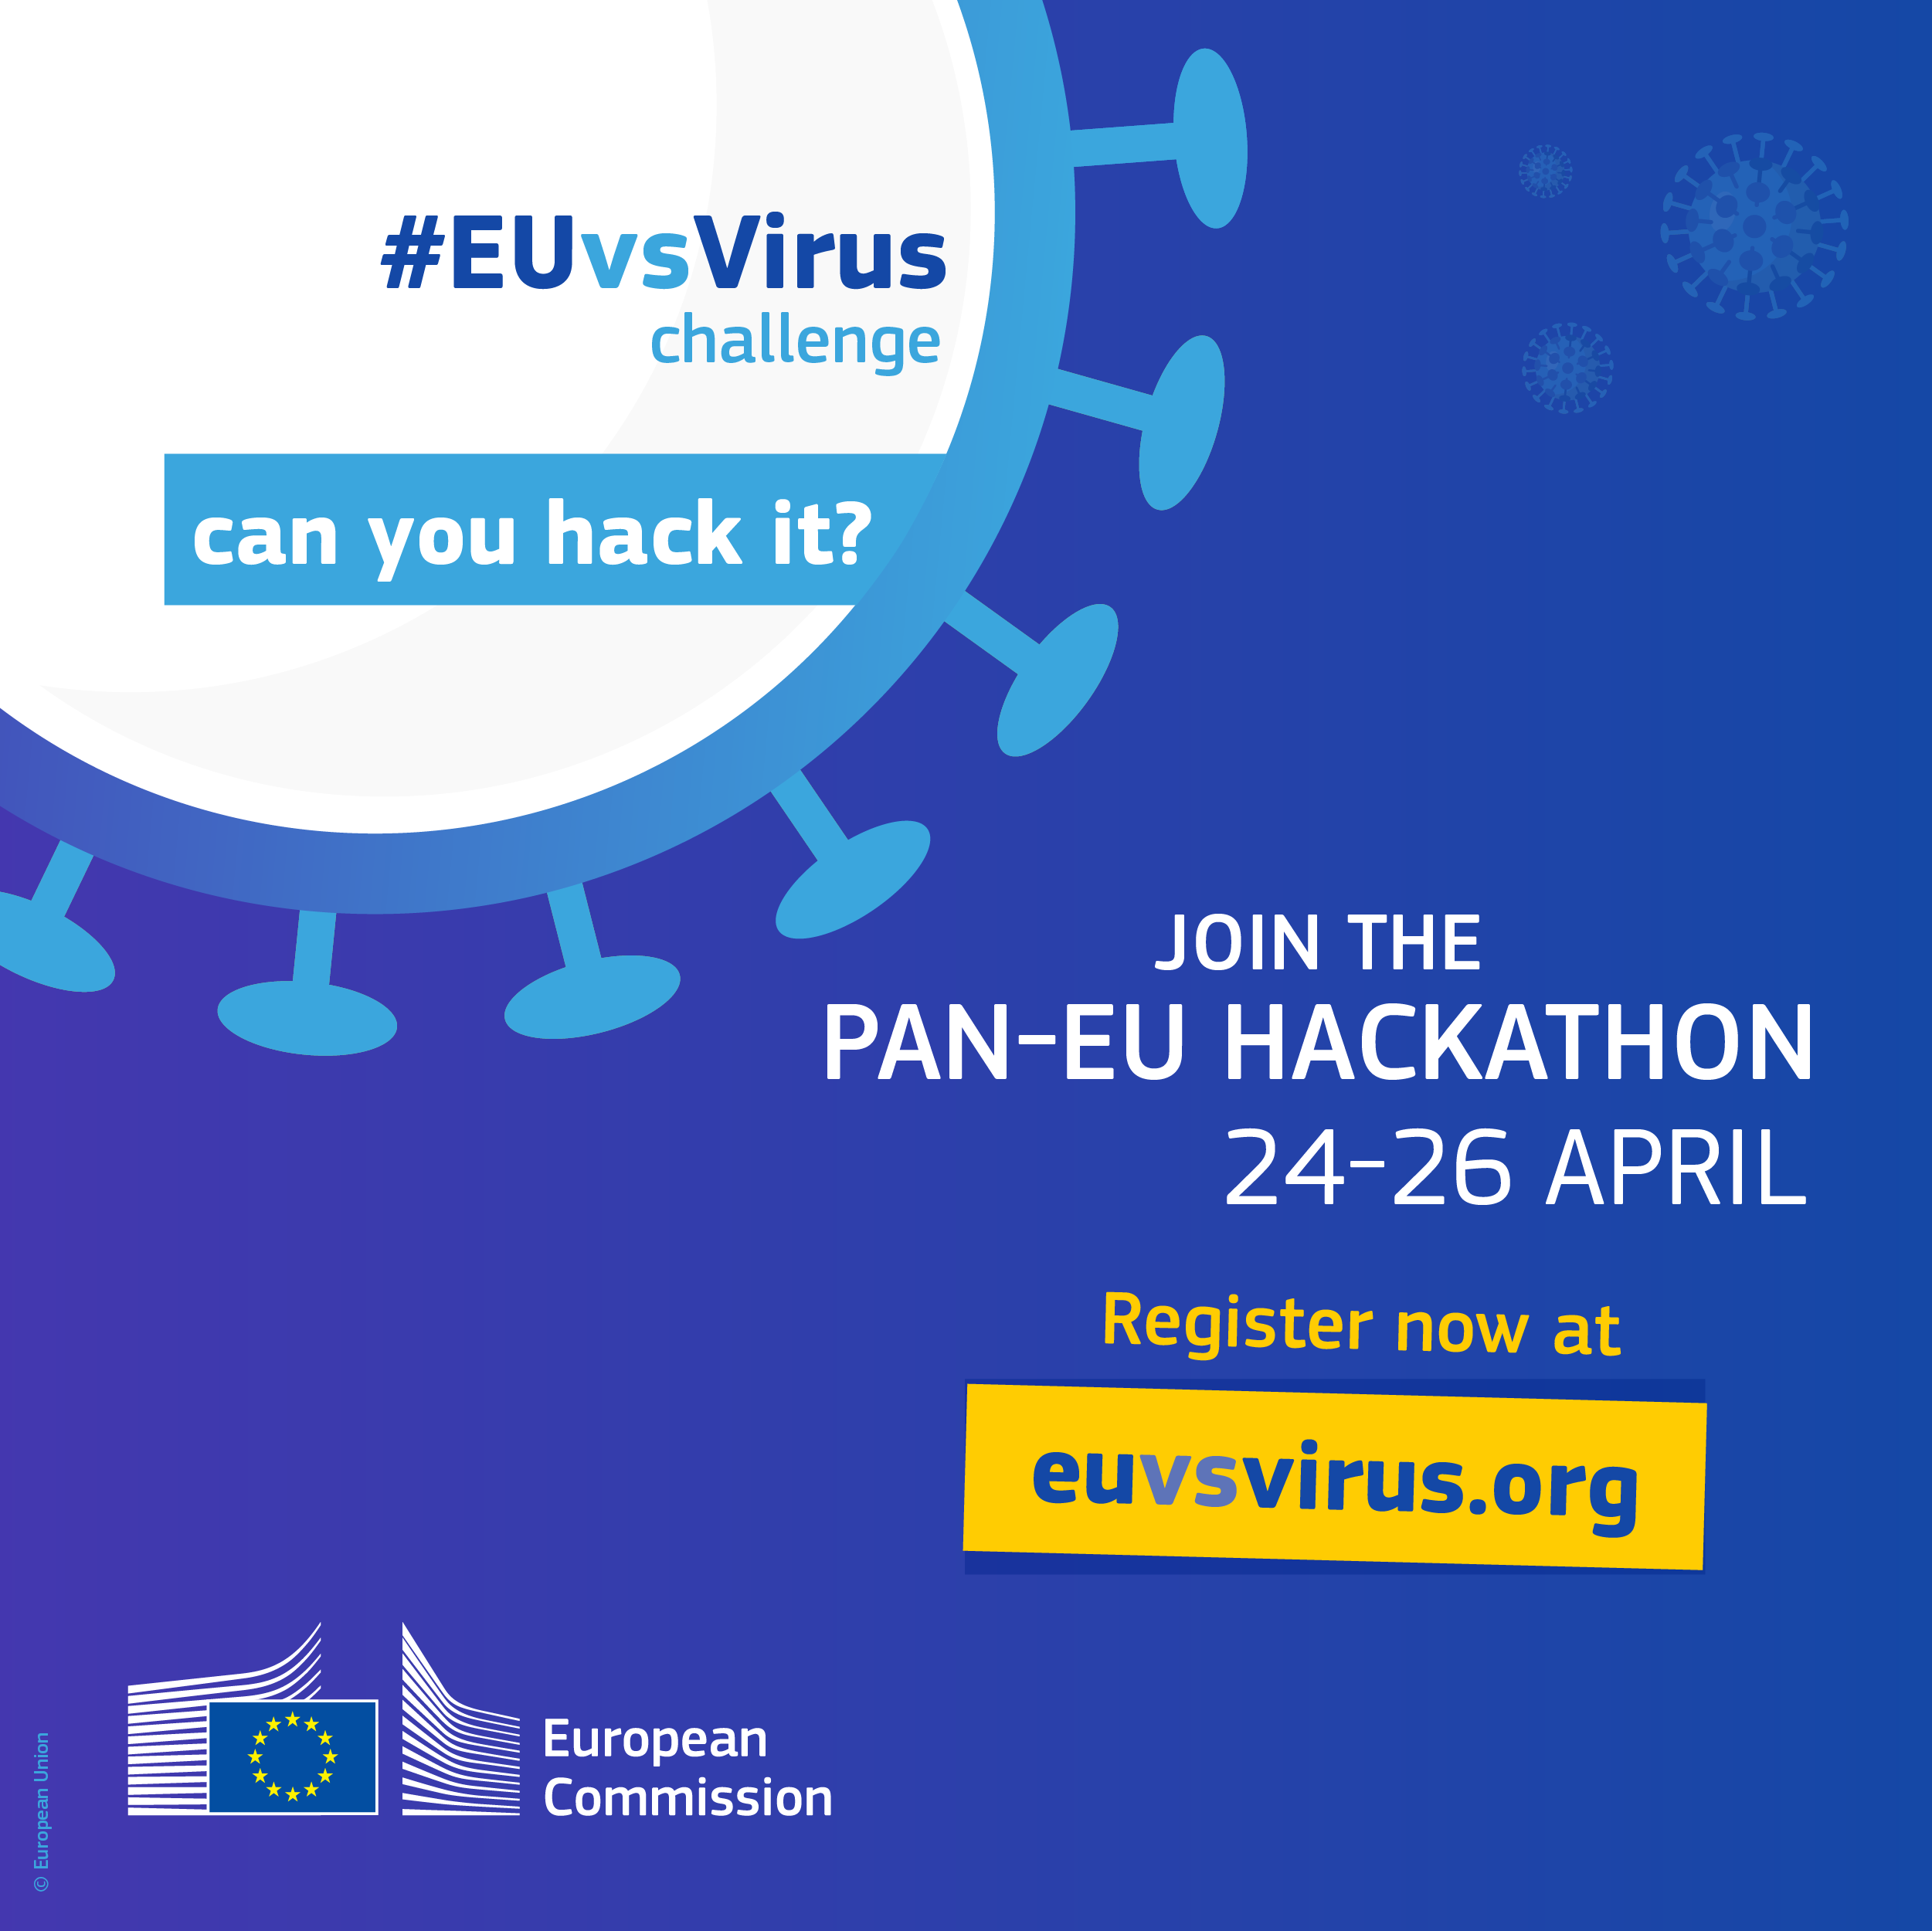 Pan-European Hackathon to develop innovative solutions to overcome societal challenges related to coronavirus